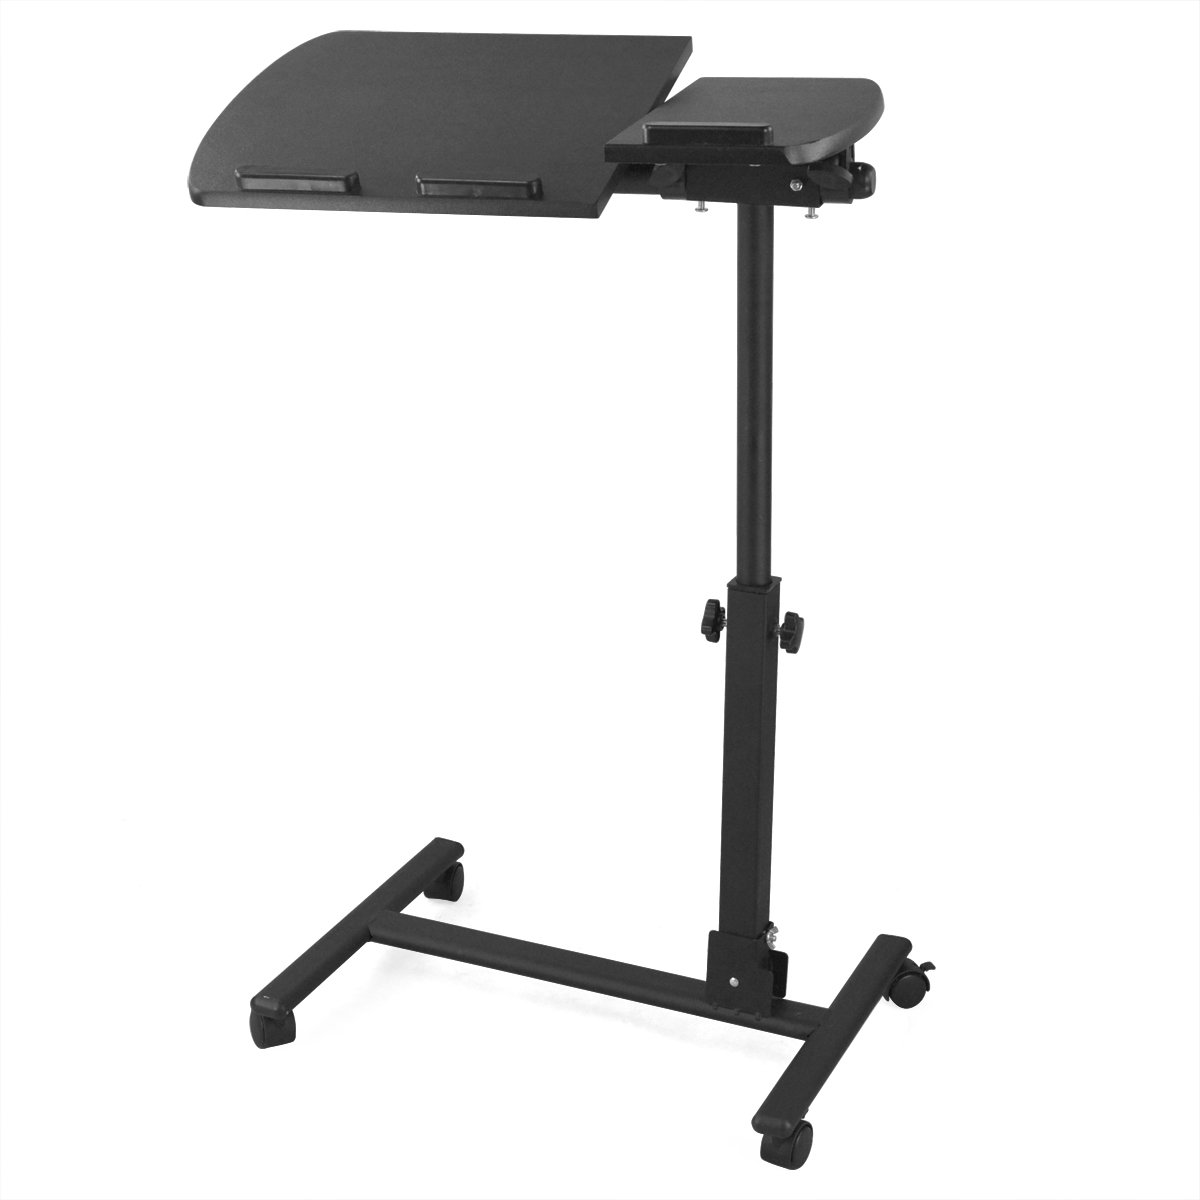 Tinxs Portable Adjustable Folding Laptop PC Table Stand Tray Lap Sofa Bed Tray Computer Notebook Desk Office Workstation (Black)Customer reviews